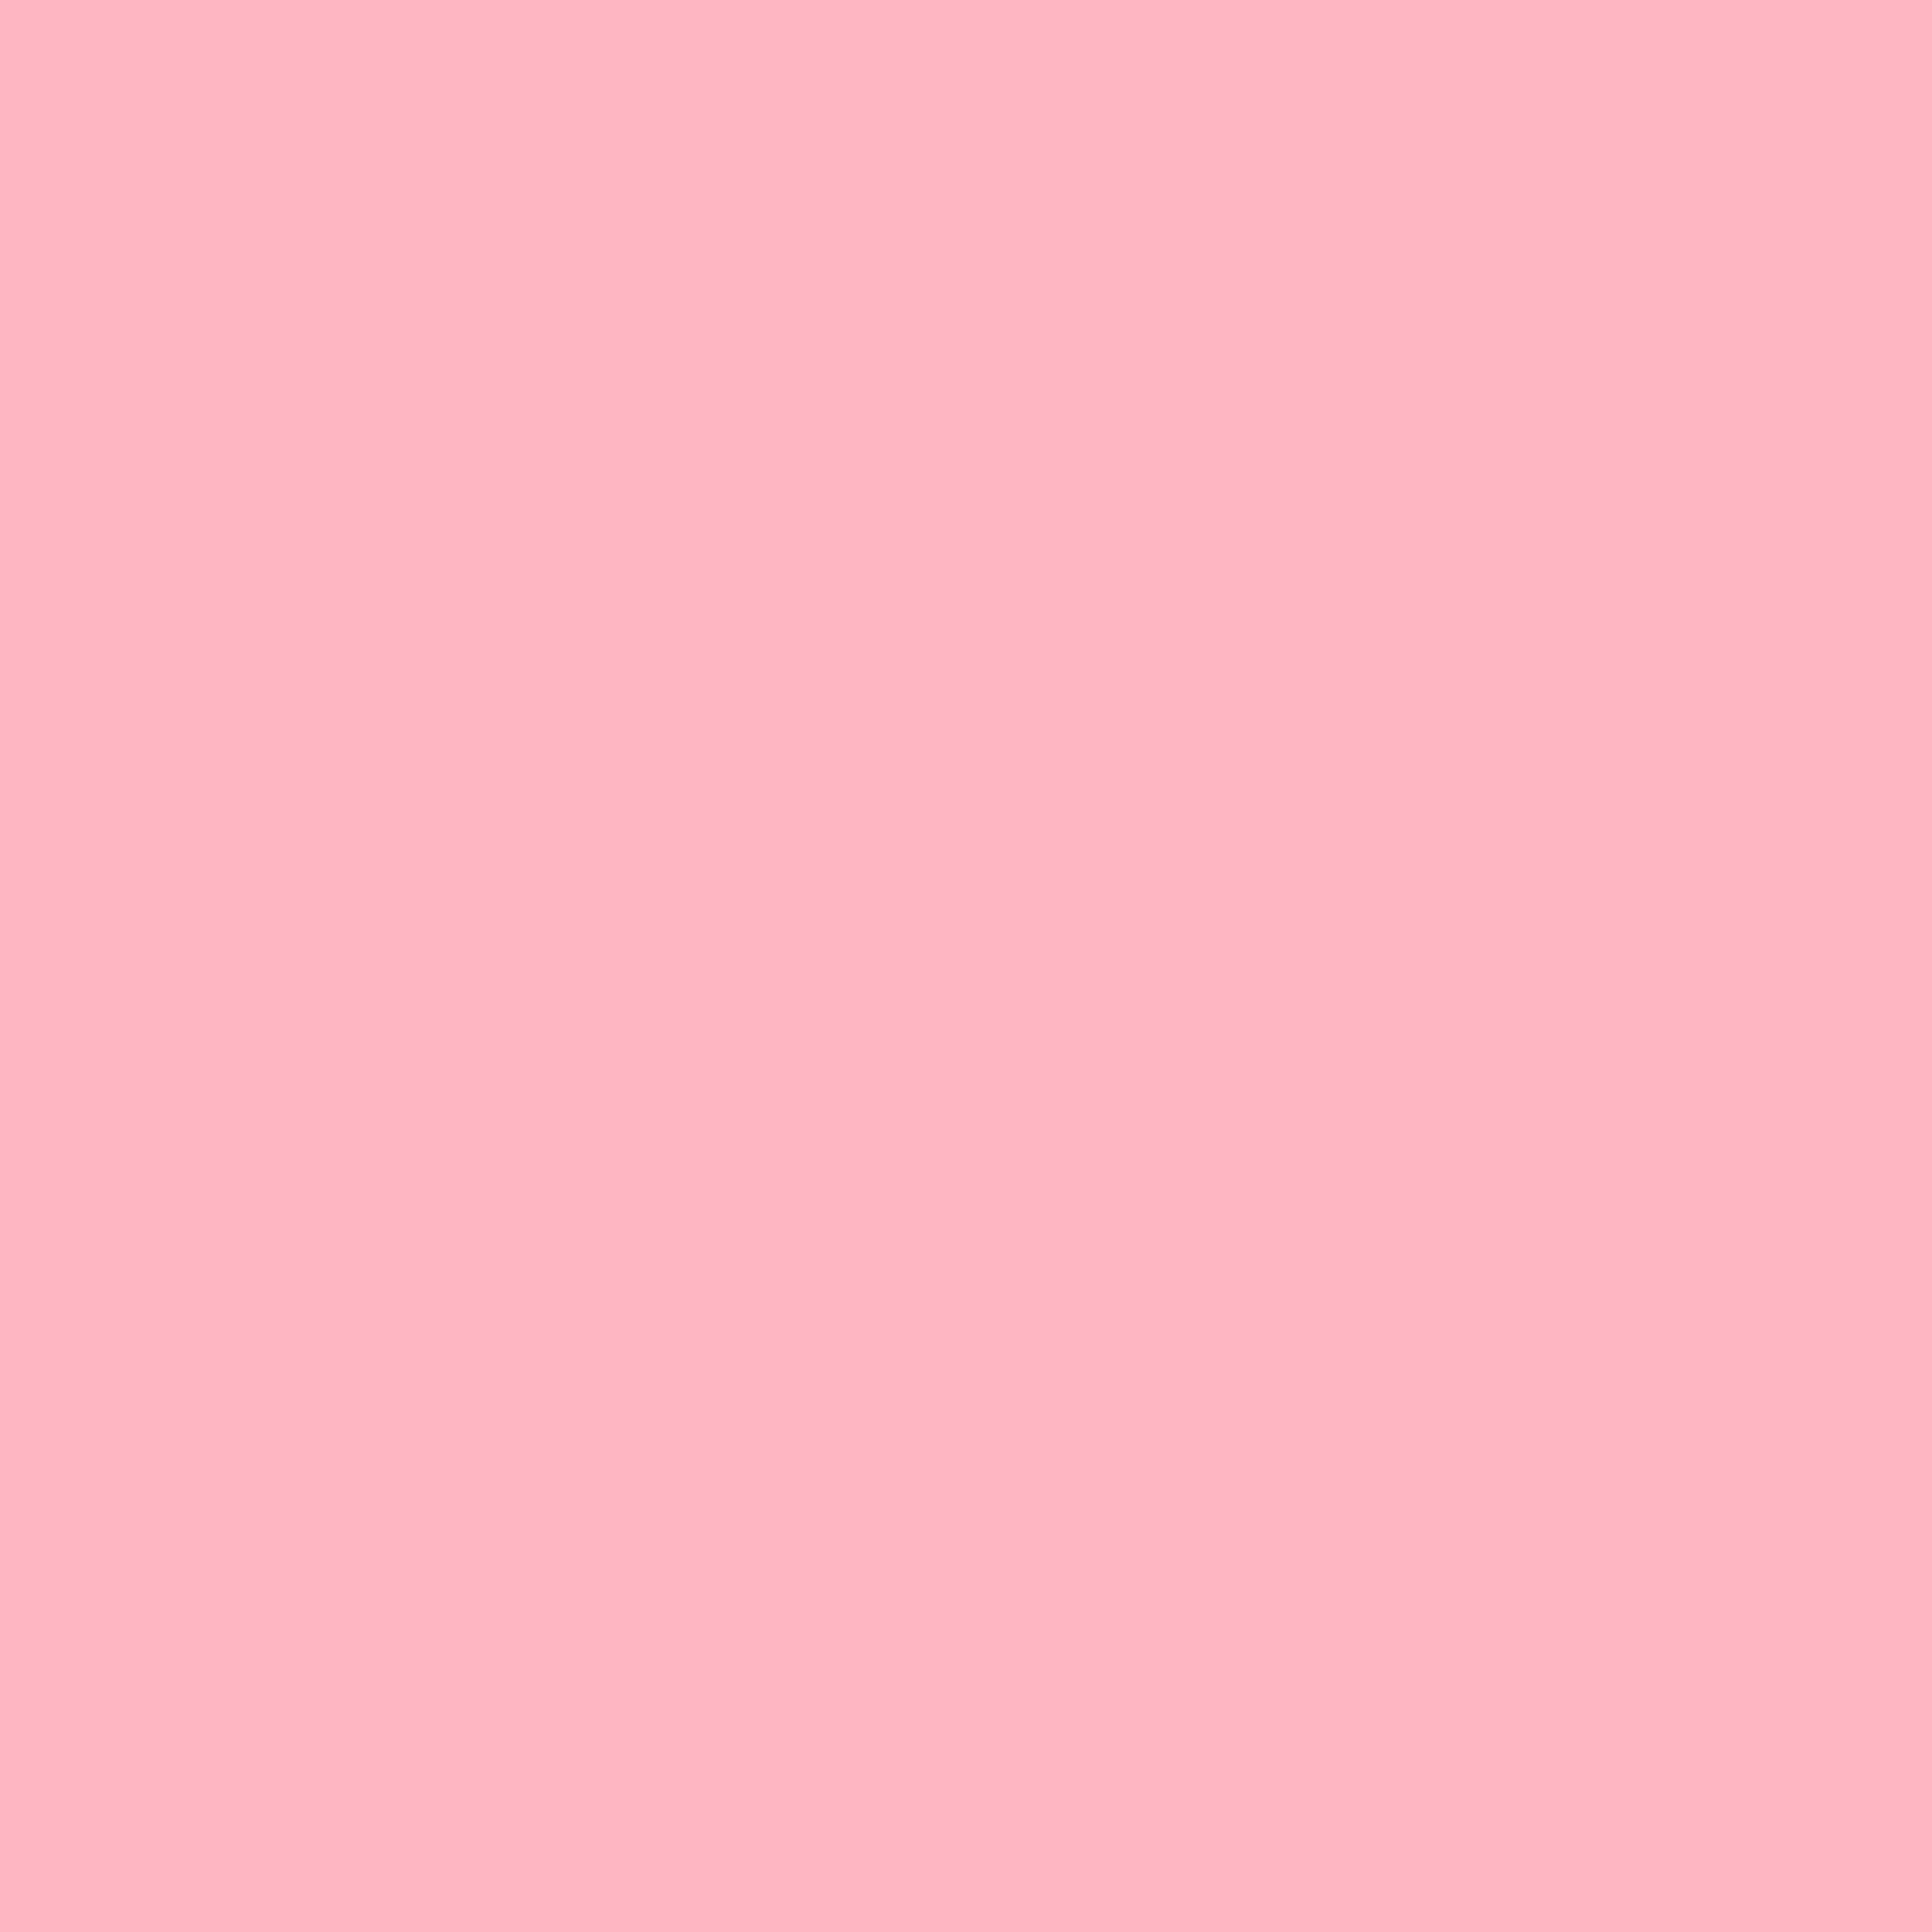 Pink Color Backgrounds - Wallpaper Cave